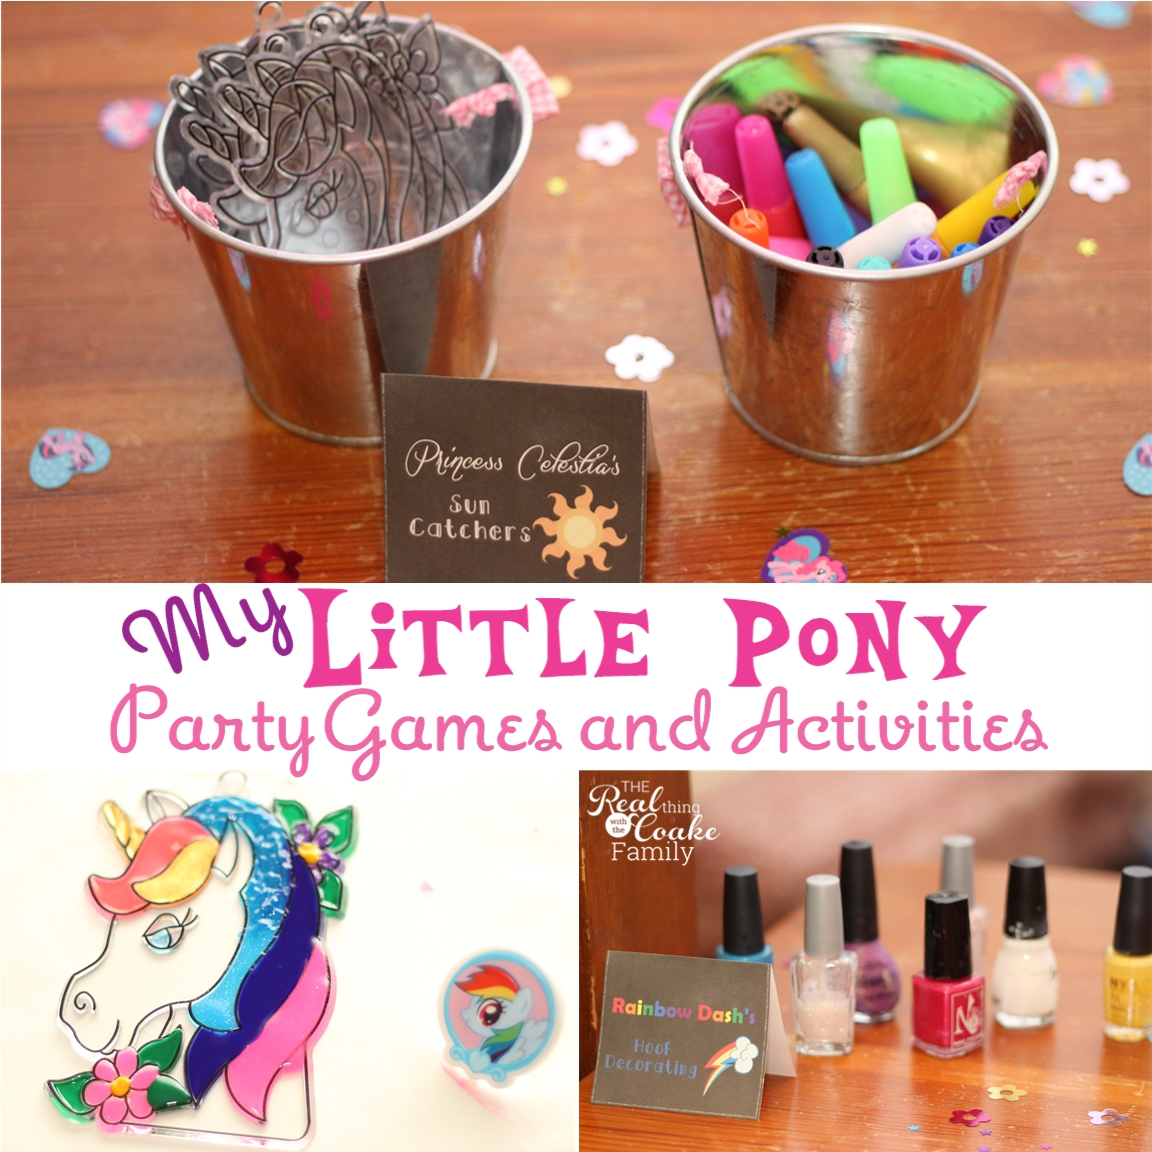 my little pony games perfect for a my little pony